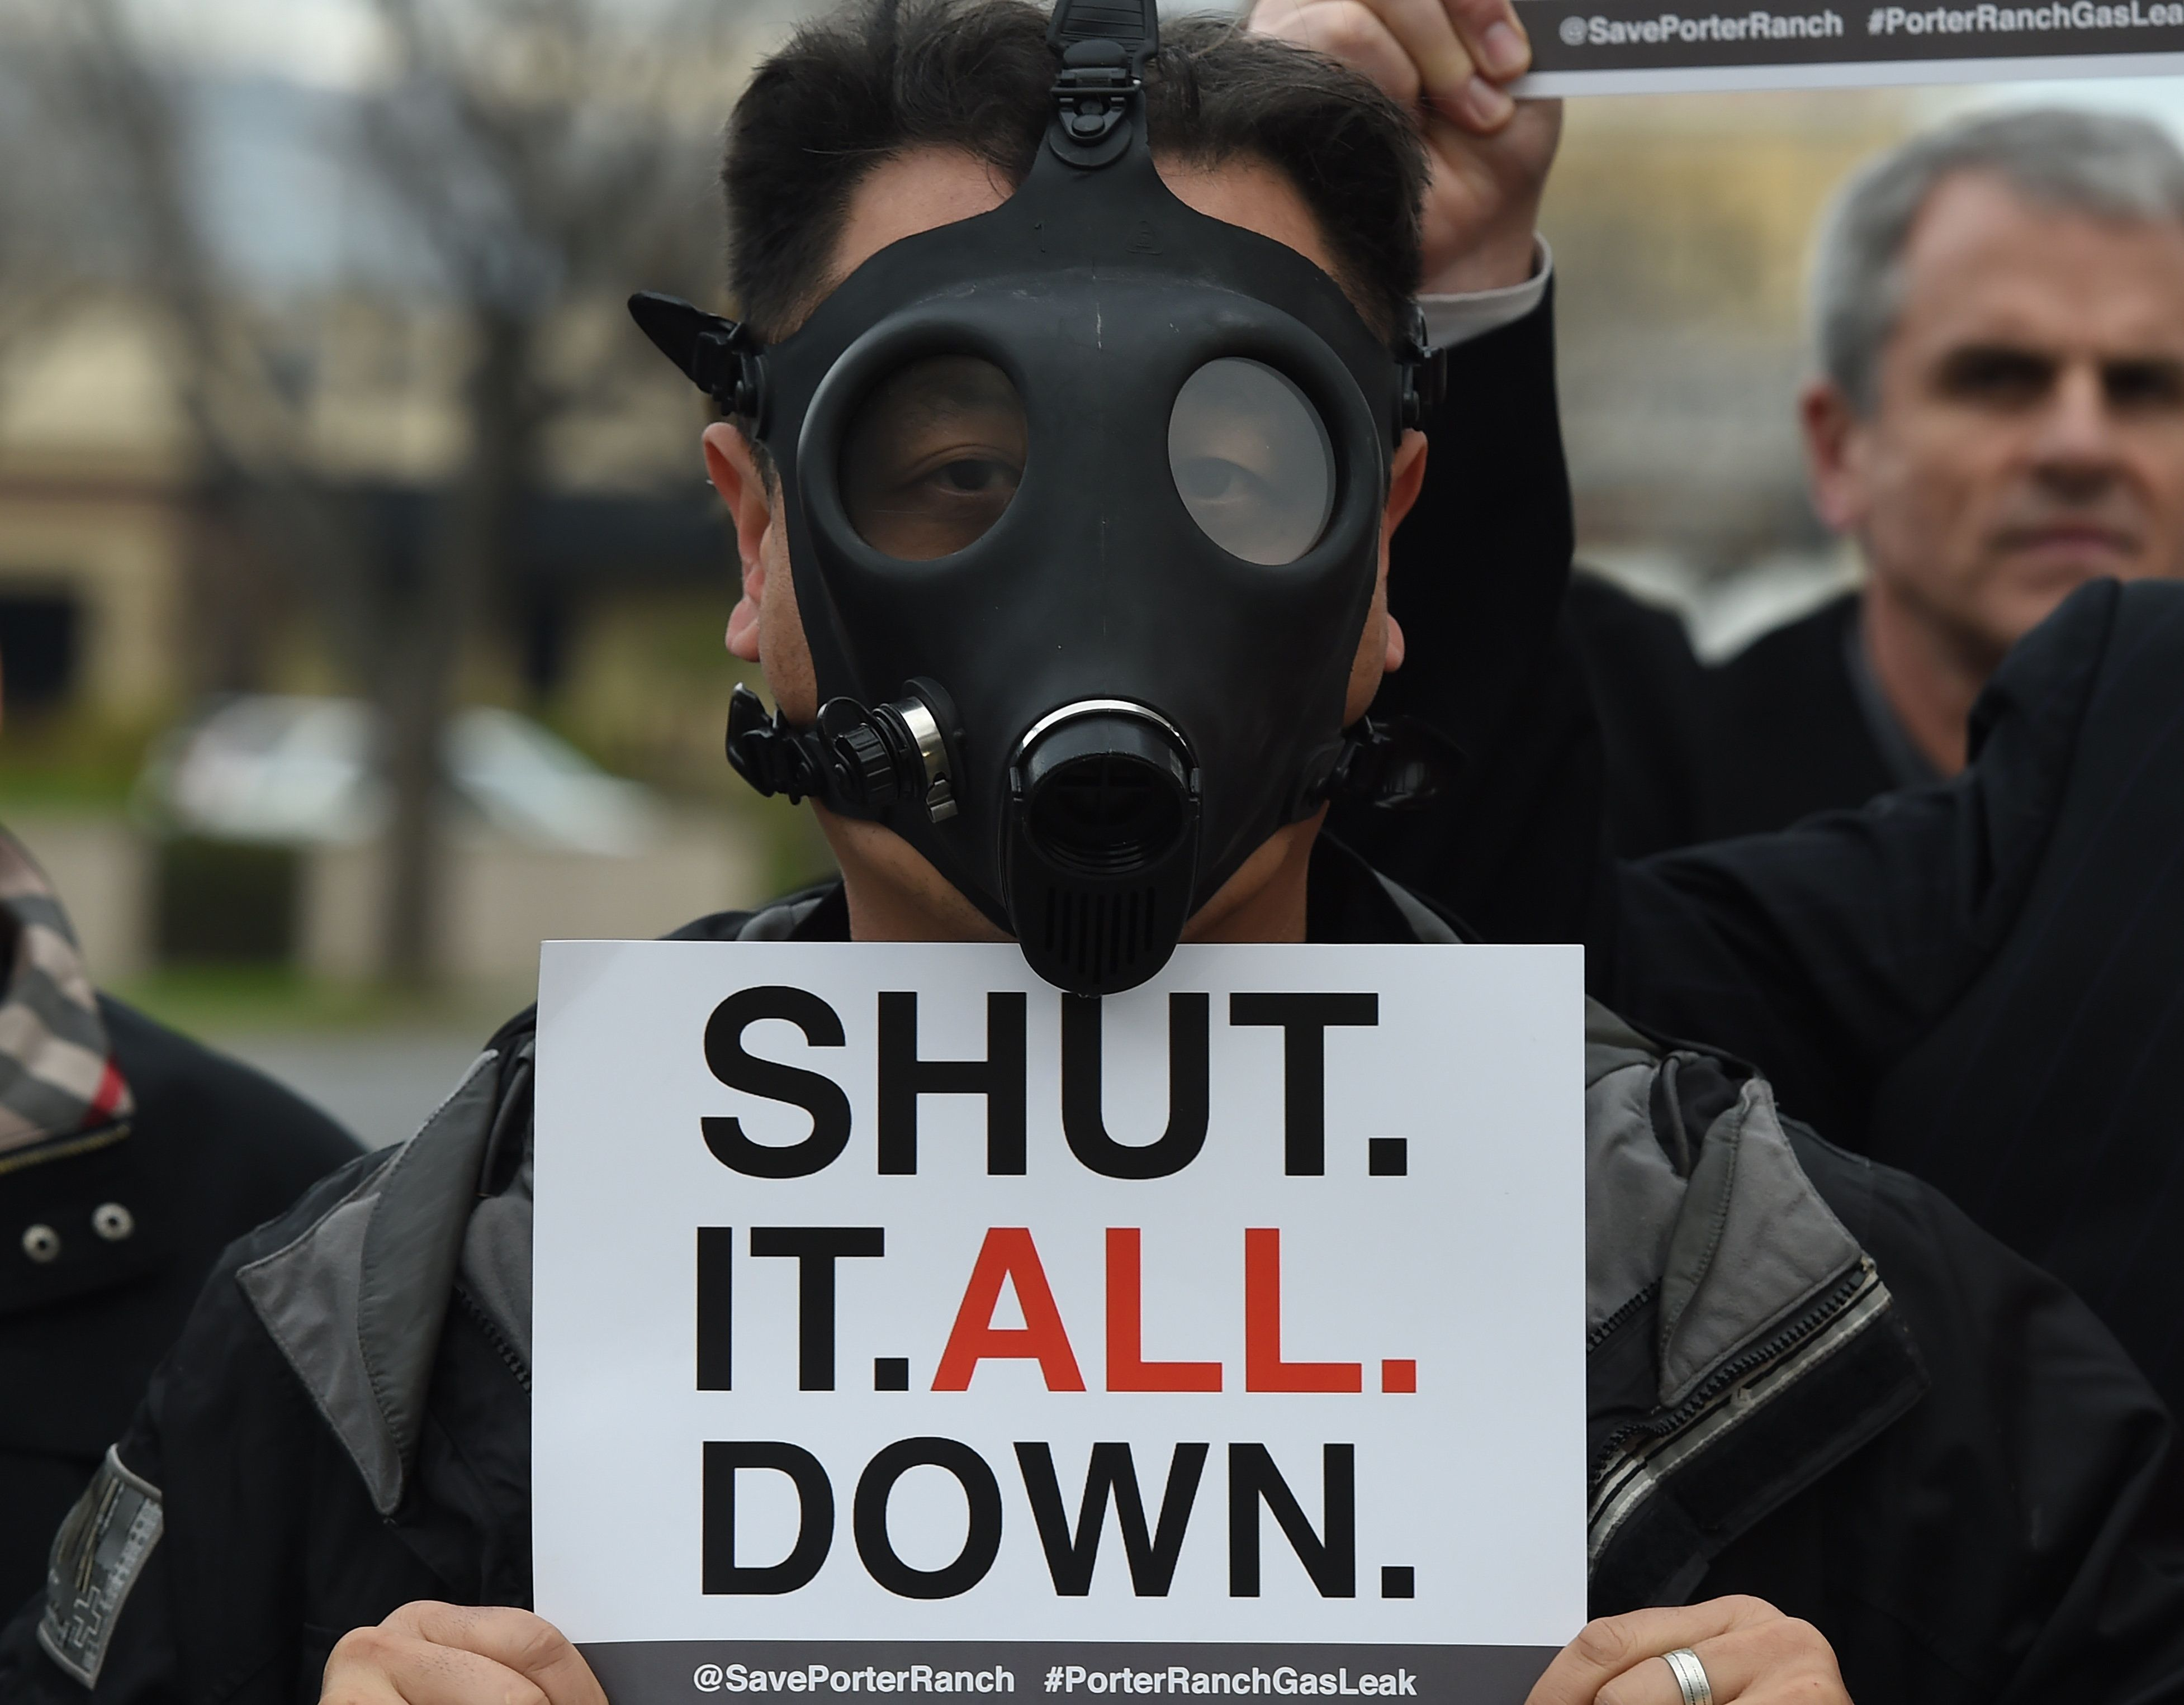 A Porter Ranch resident wears a gas mask as he joins others in a protest outside a meeting of the Air Quality Management Board (AQMD) over the continuing gas leak that started in October and which has forced thousands of residents to flee from the Los Angeles suburb of Porter Ranch, California on January 23, 2016. The governor of California, Jerry Brown recently declared a state of emergency in the Los Angeles community where a massive gas leak has forced the evacuation of nearby residents from their homes. / AFP / Mark Ralston        (Photo credit should read MARK RALSTON/AFP/Getty Images)